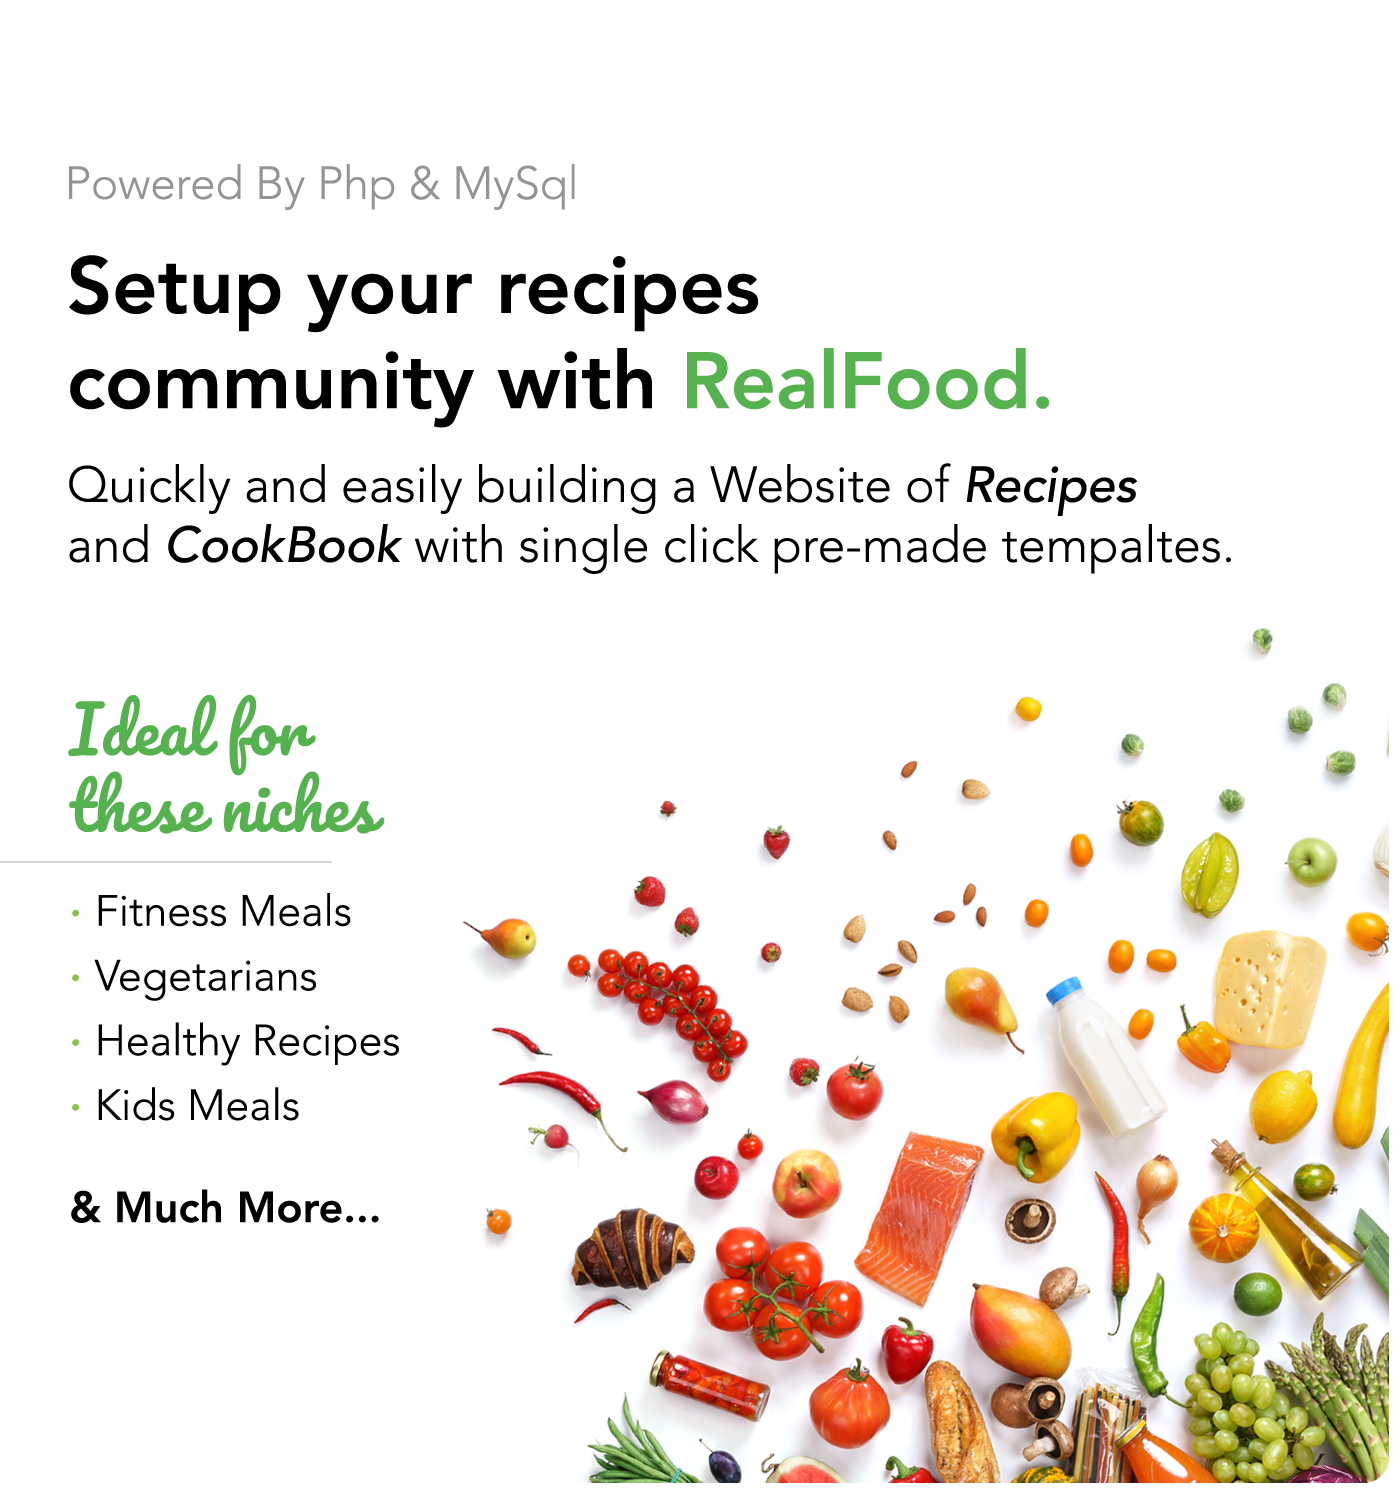 RealFood | The Ultimate PHP Recipes & Community Food - 7